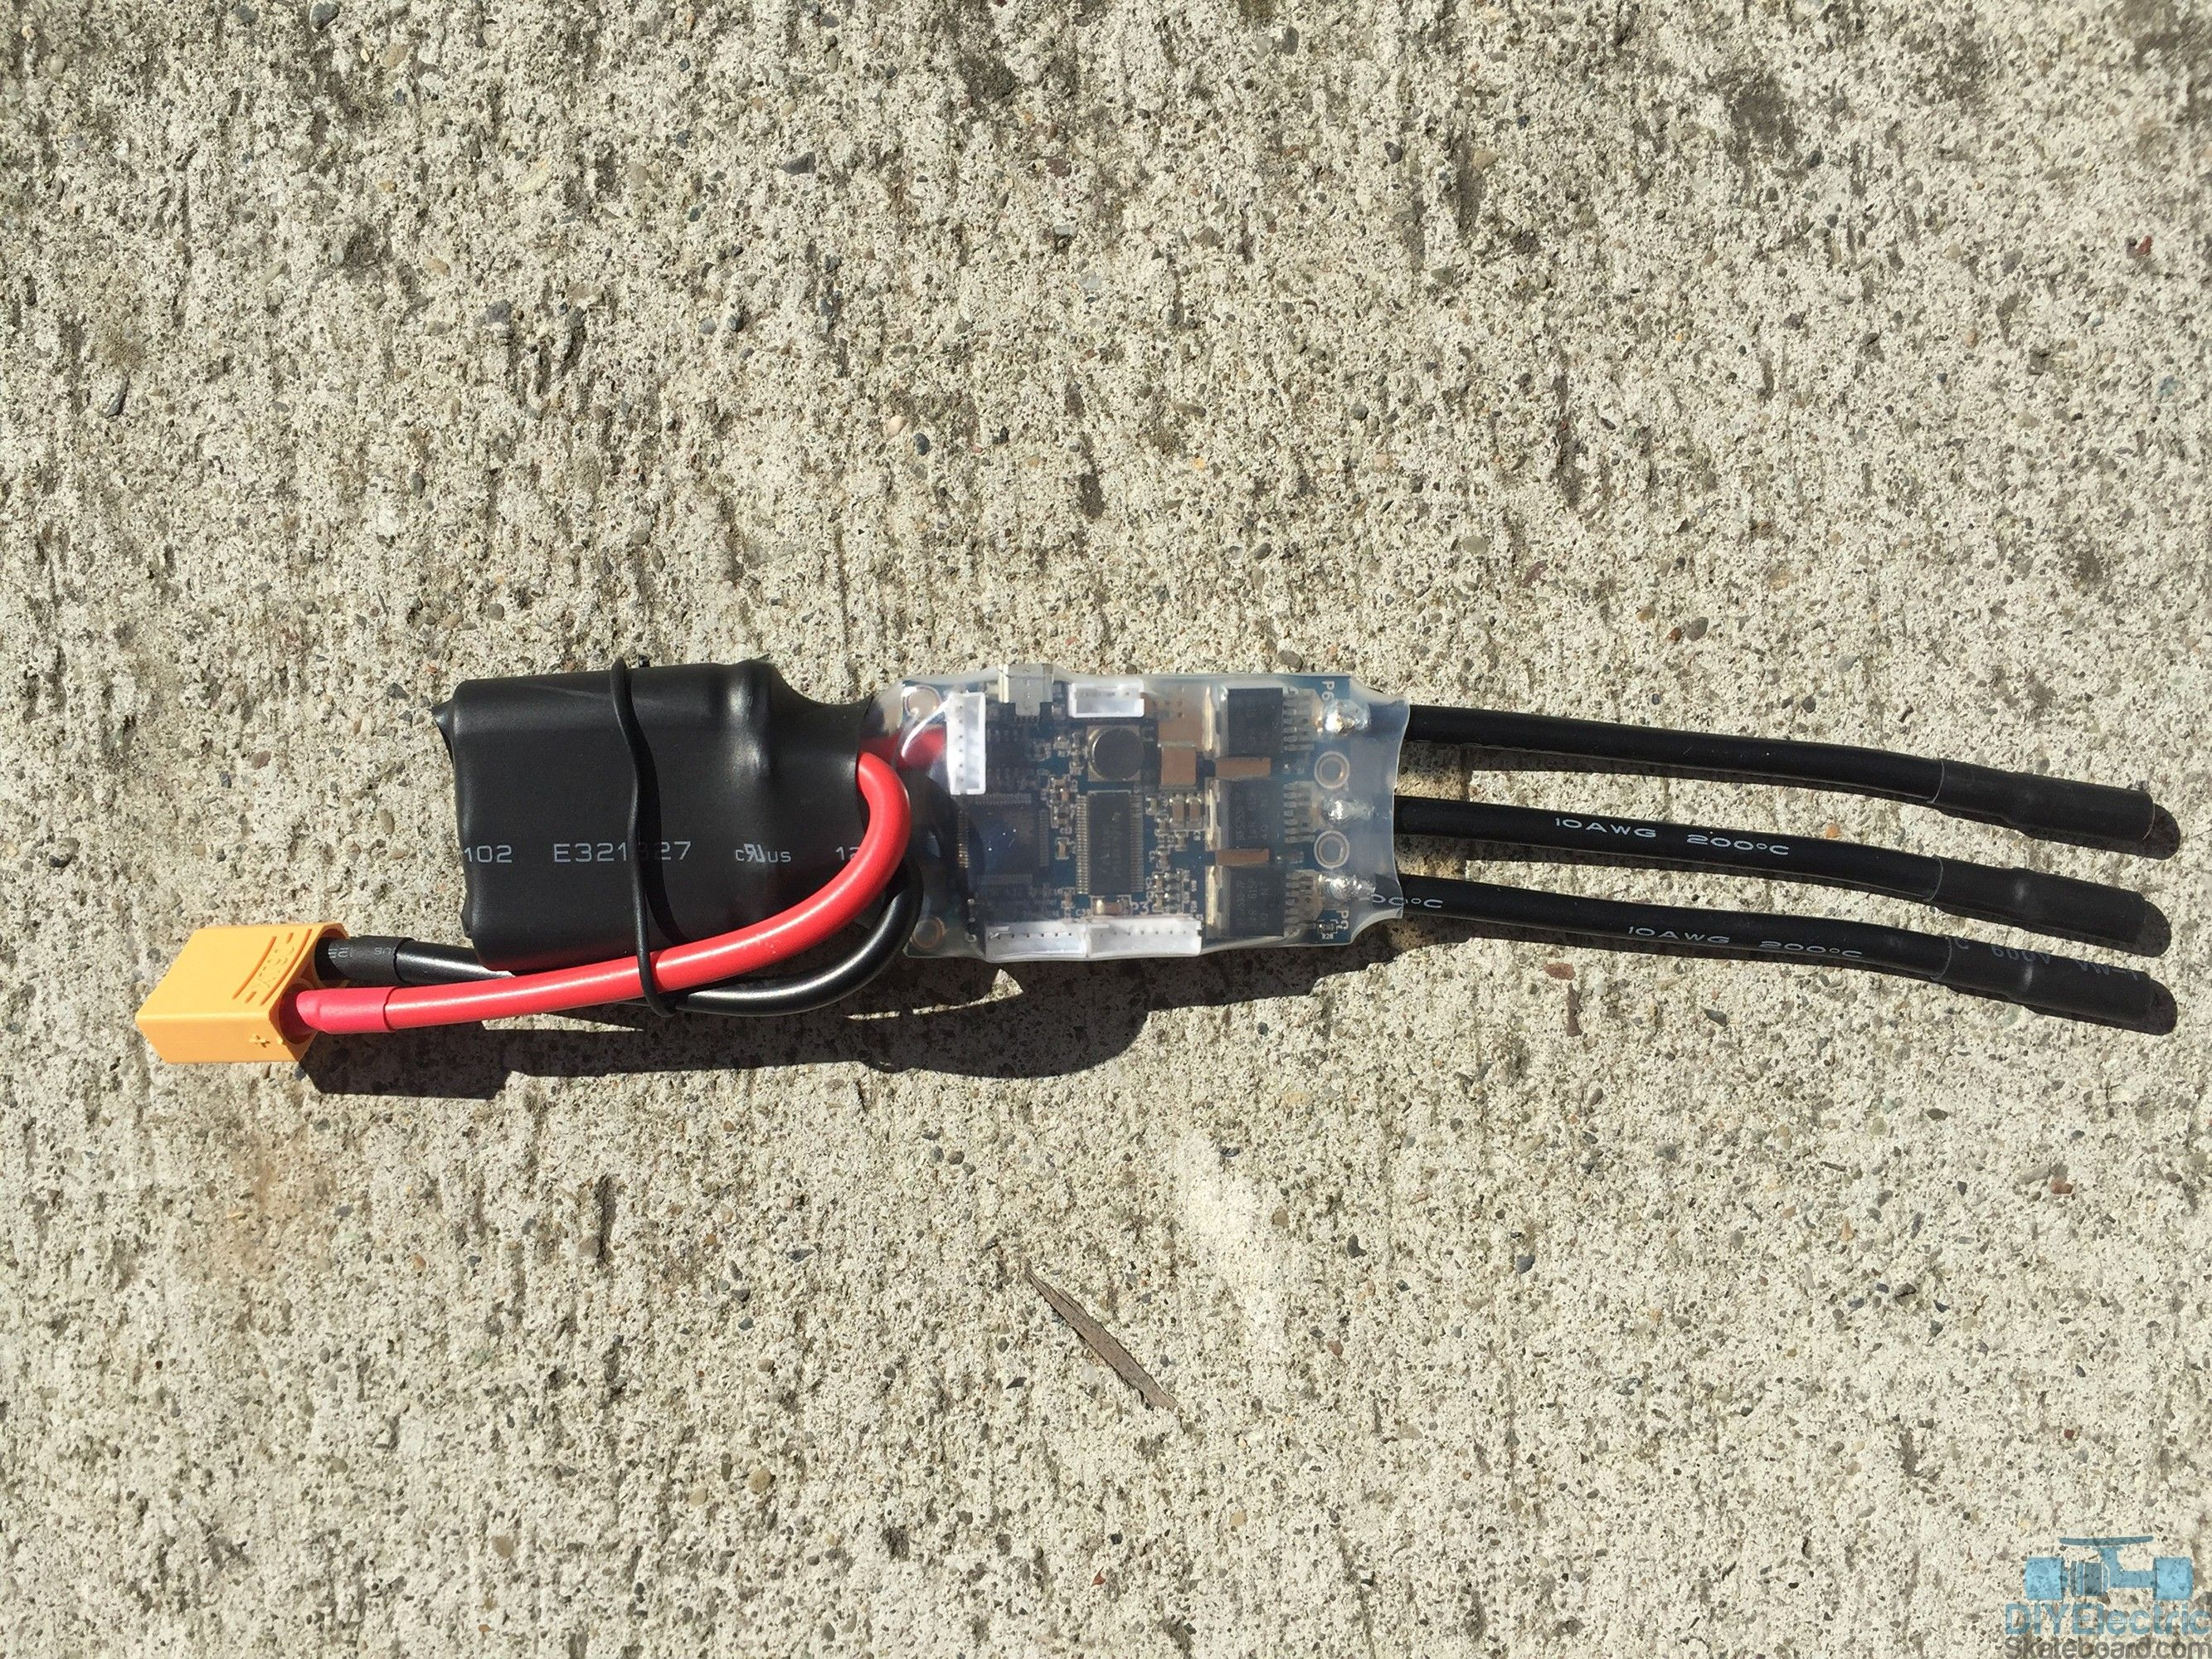 TORQUE ESC BLDC Electronic Speed Controller  Electric Vehicle: builds n info  Diy electric